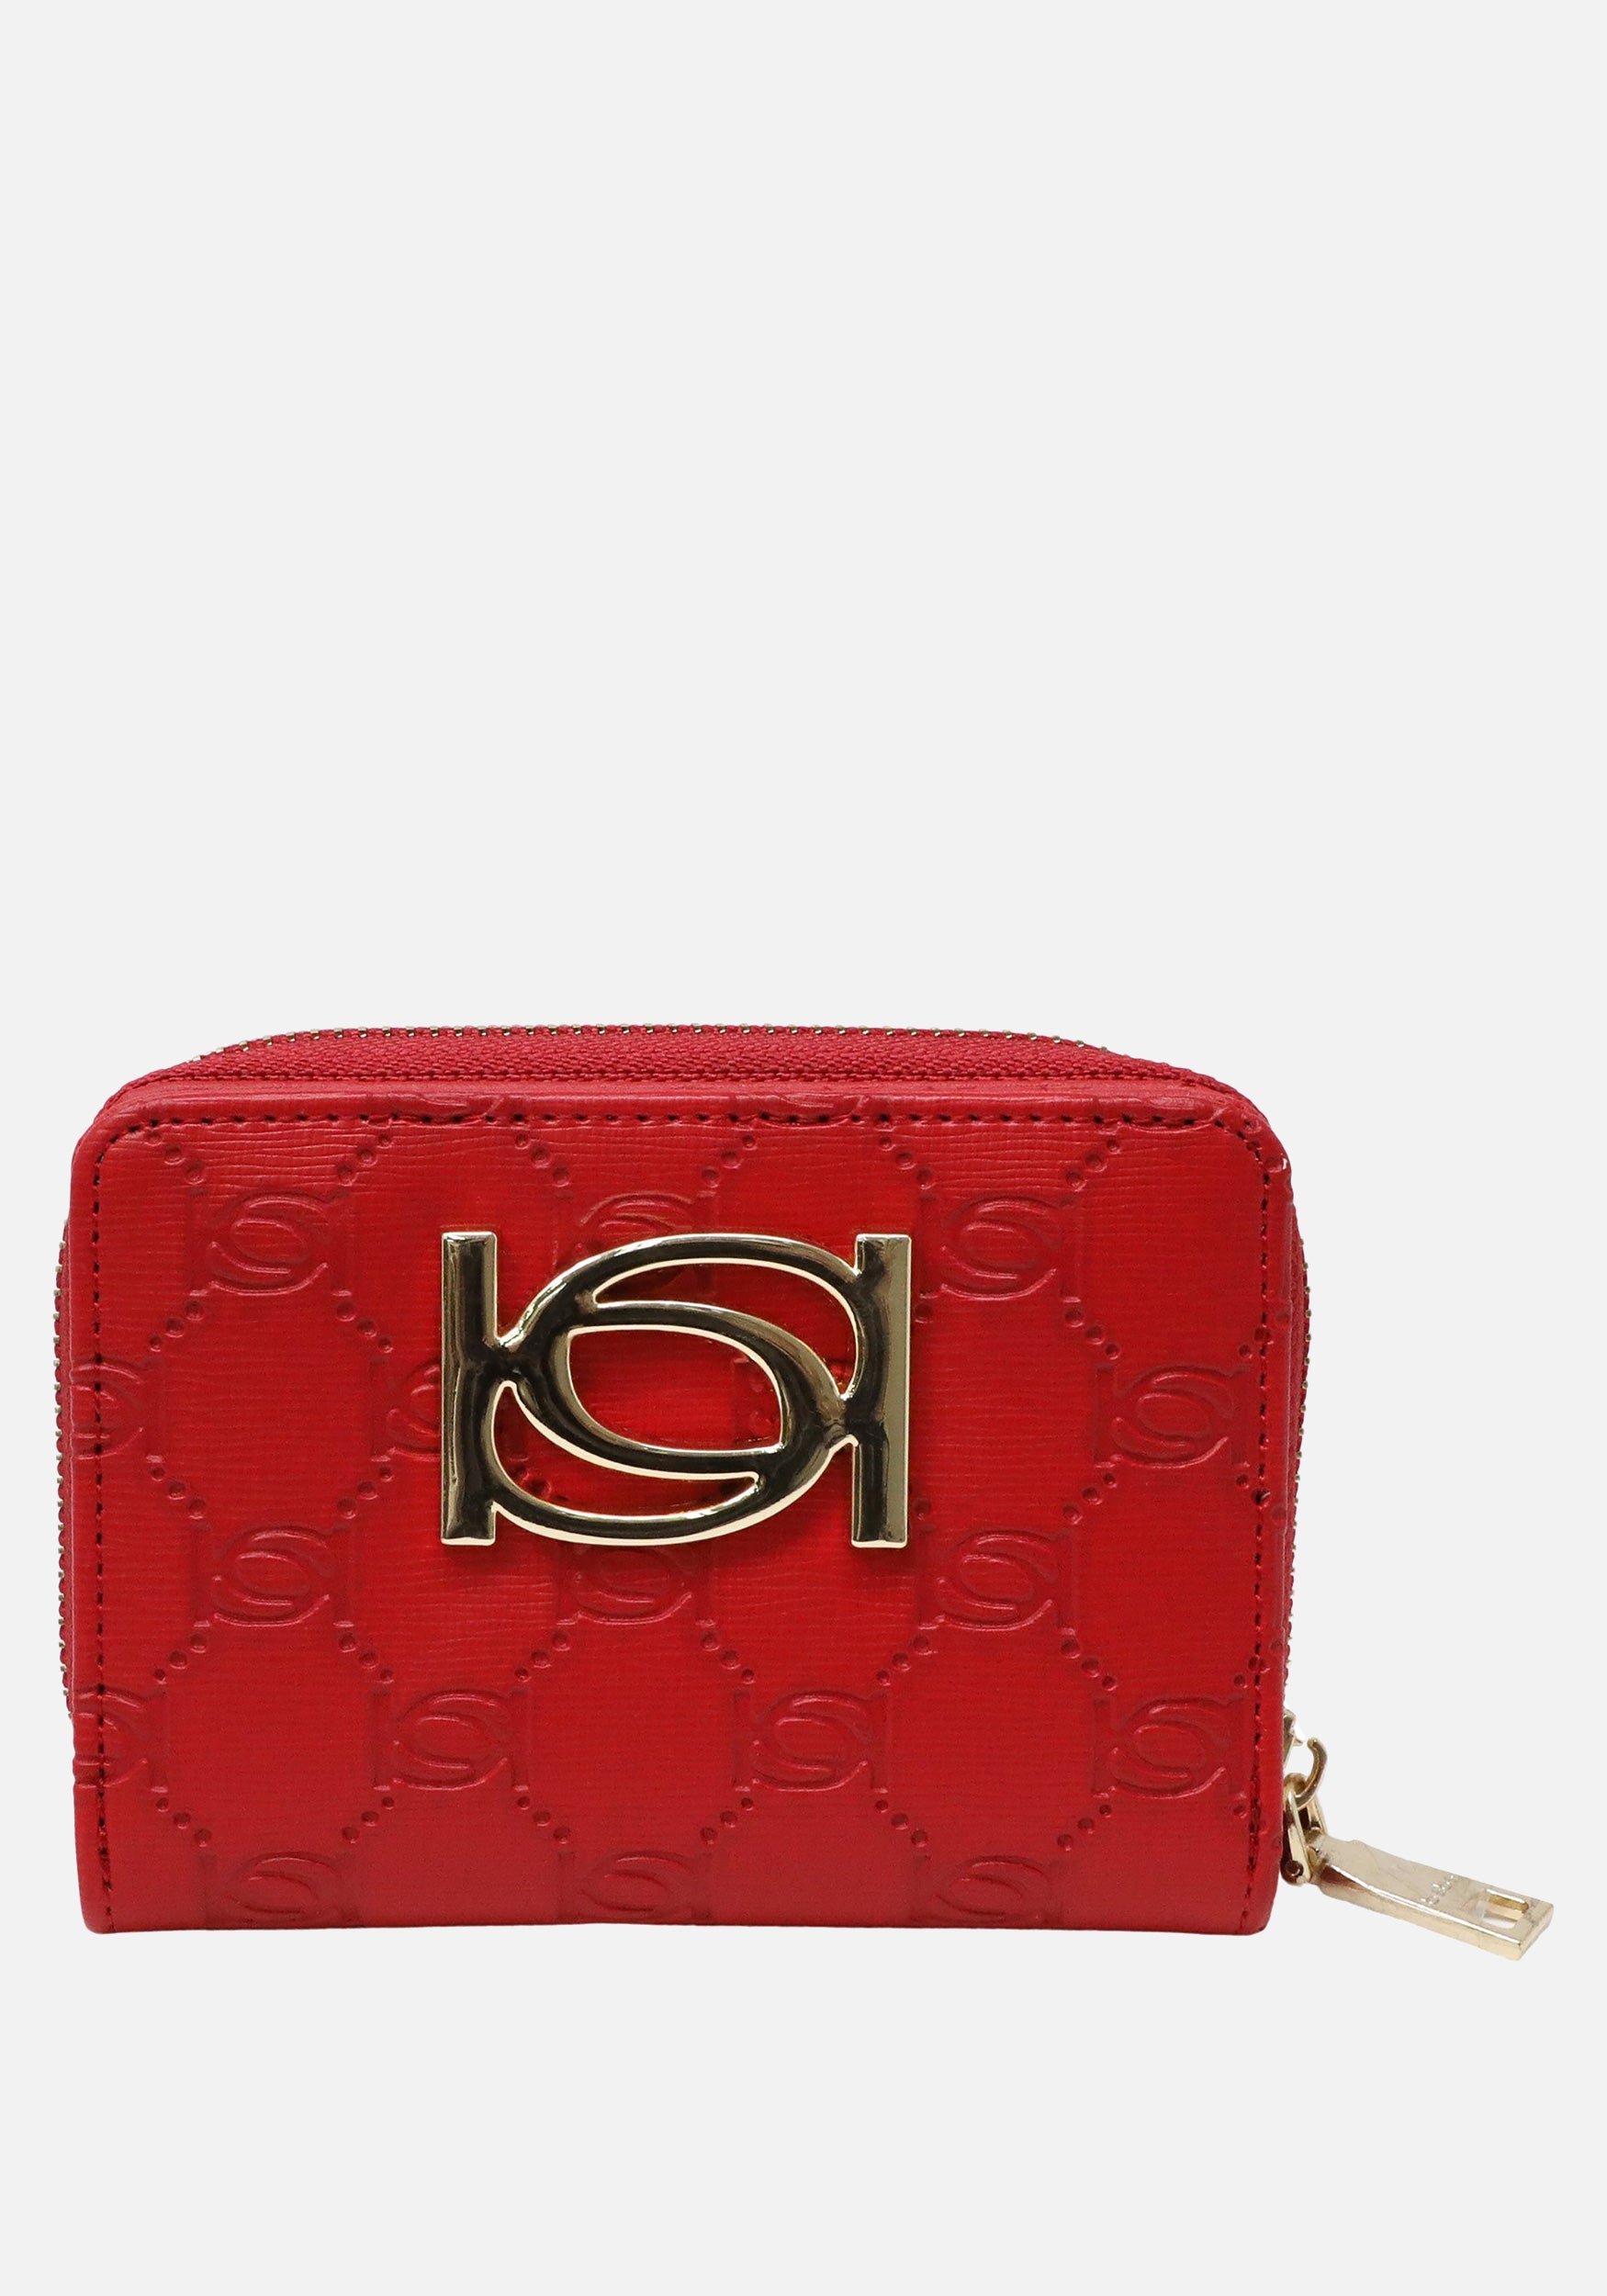 Bebe Women's Nina Emboss Compact Wallet in Red Polyester